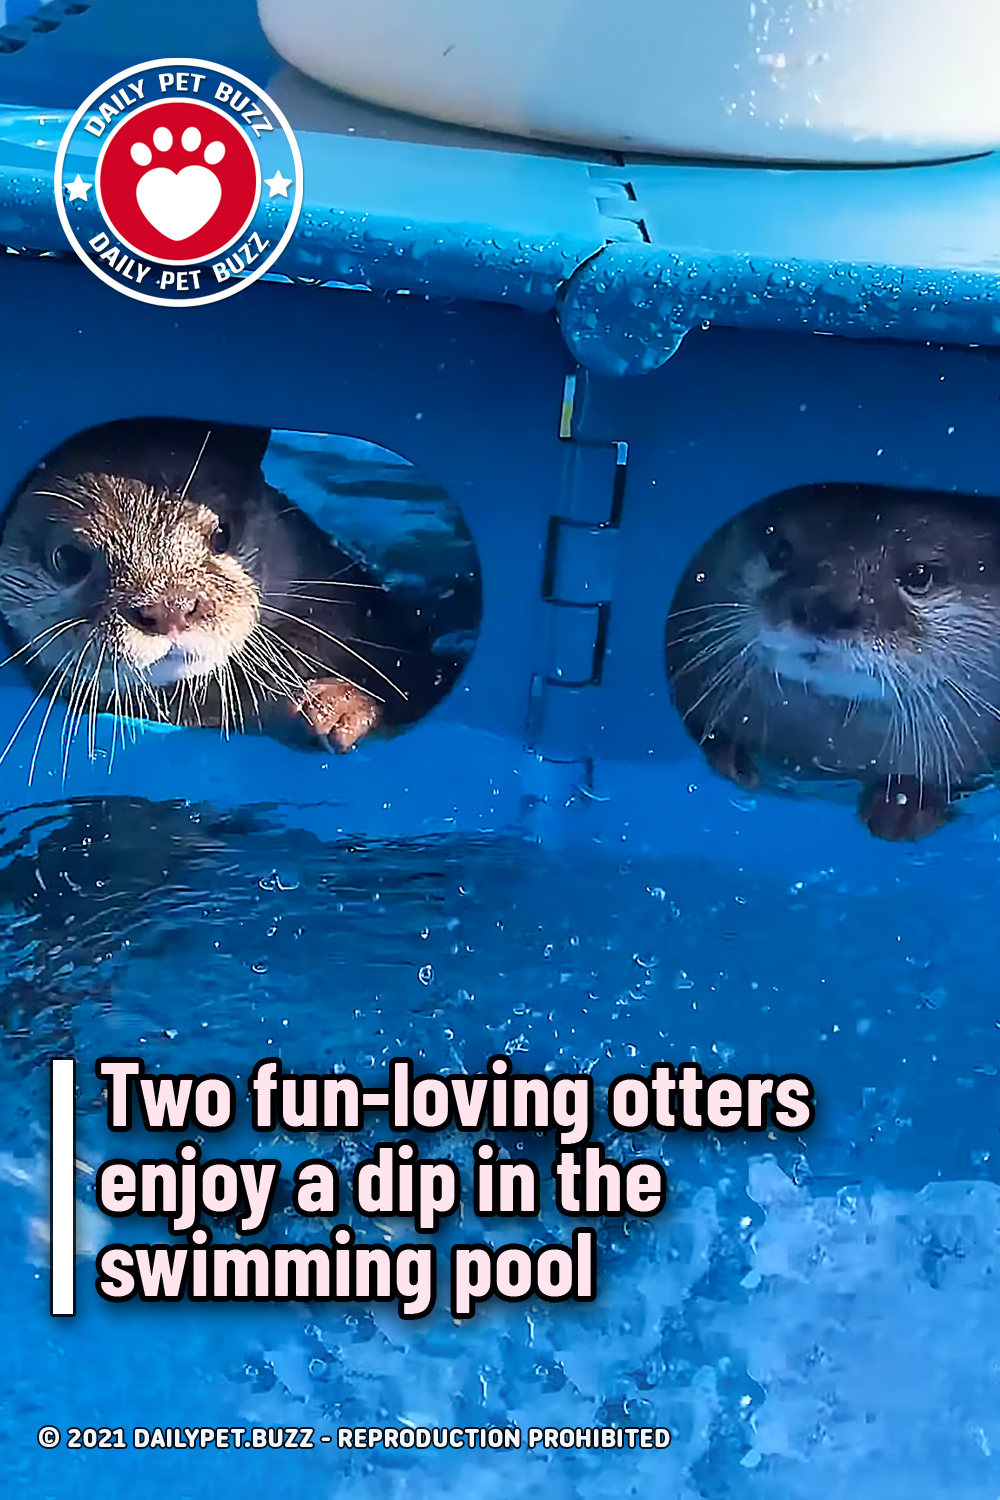 Two fun-loving otters enjoy a dip in the swimming pool